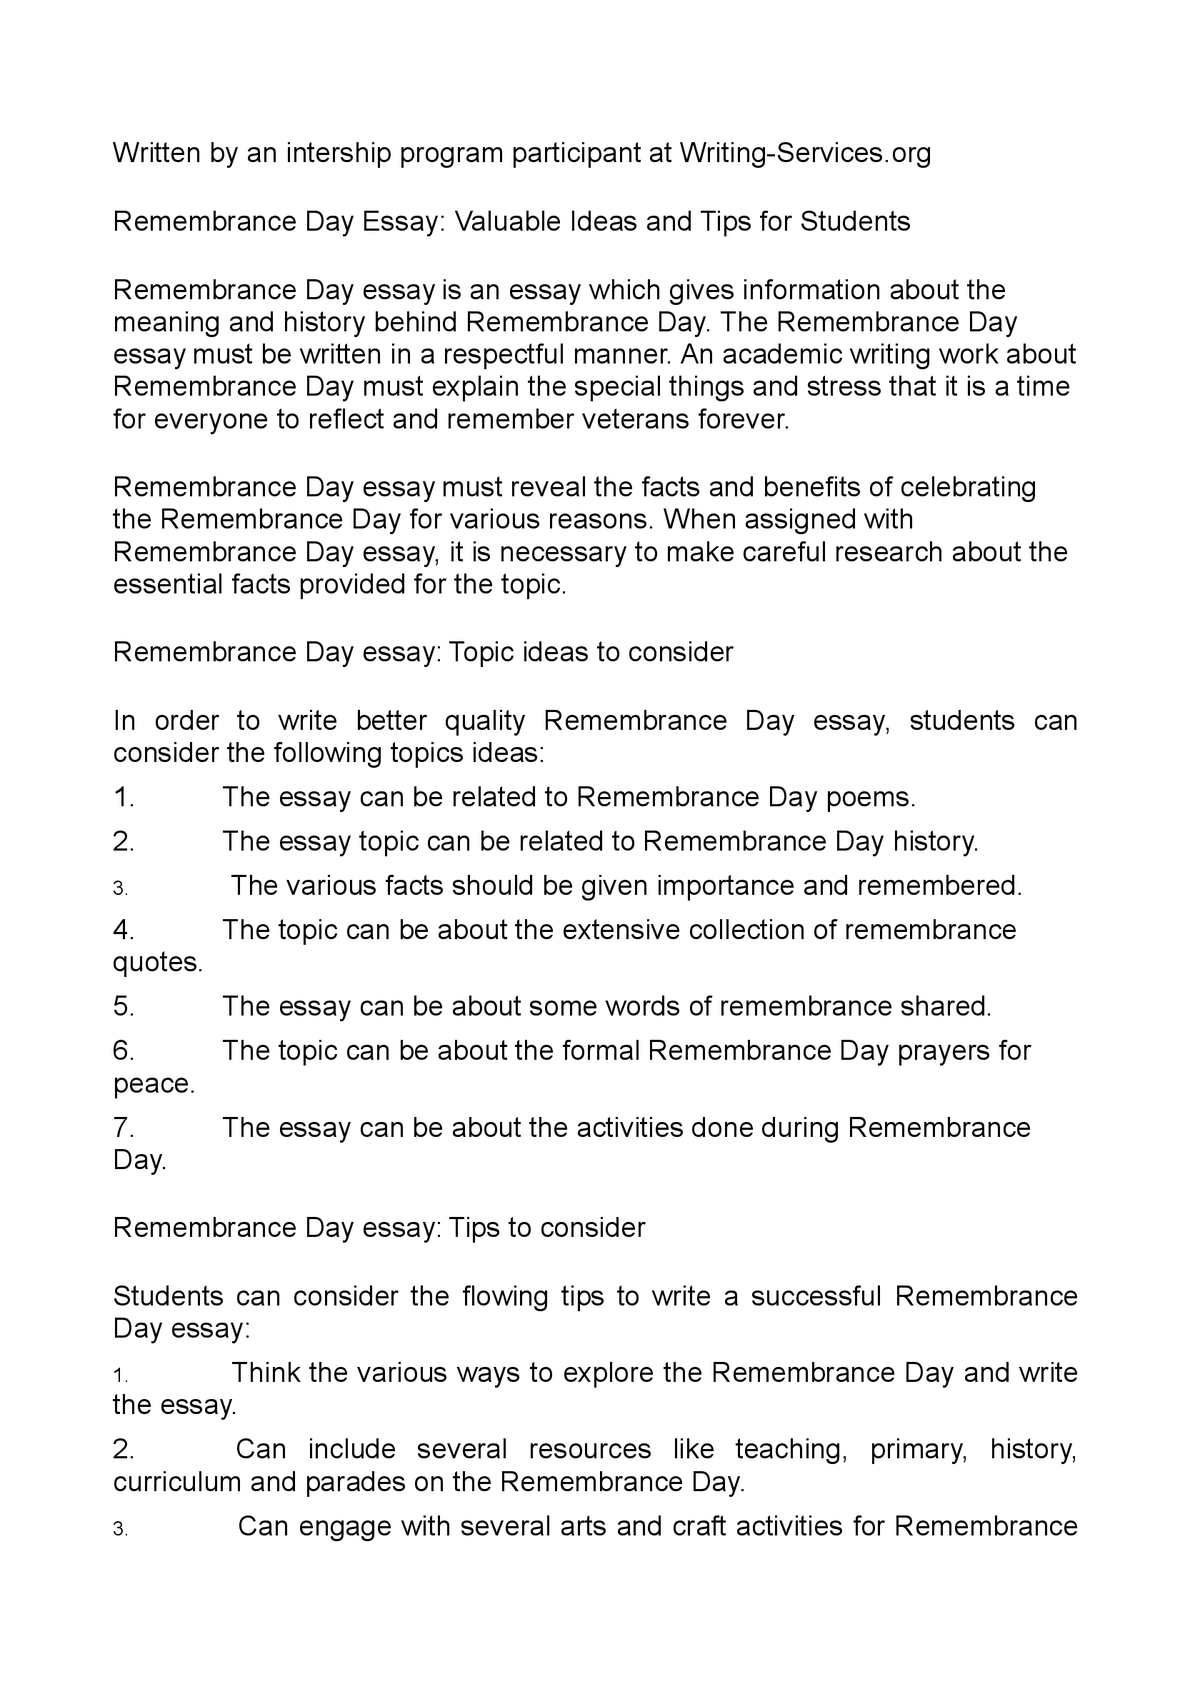 calam atilde copy o remembrance day essay valuable ideas and tips for students